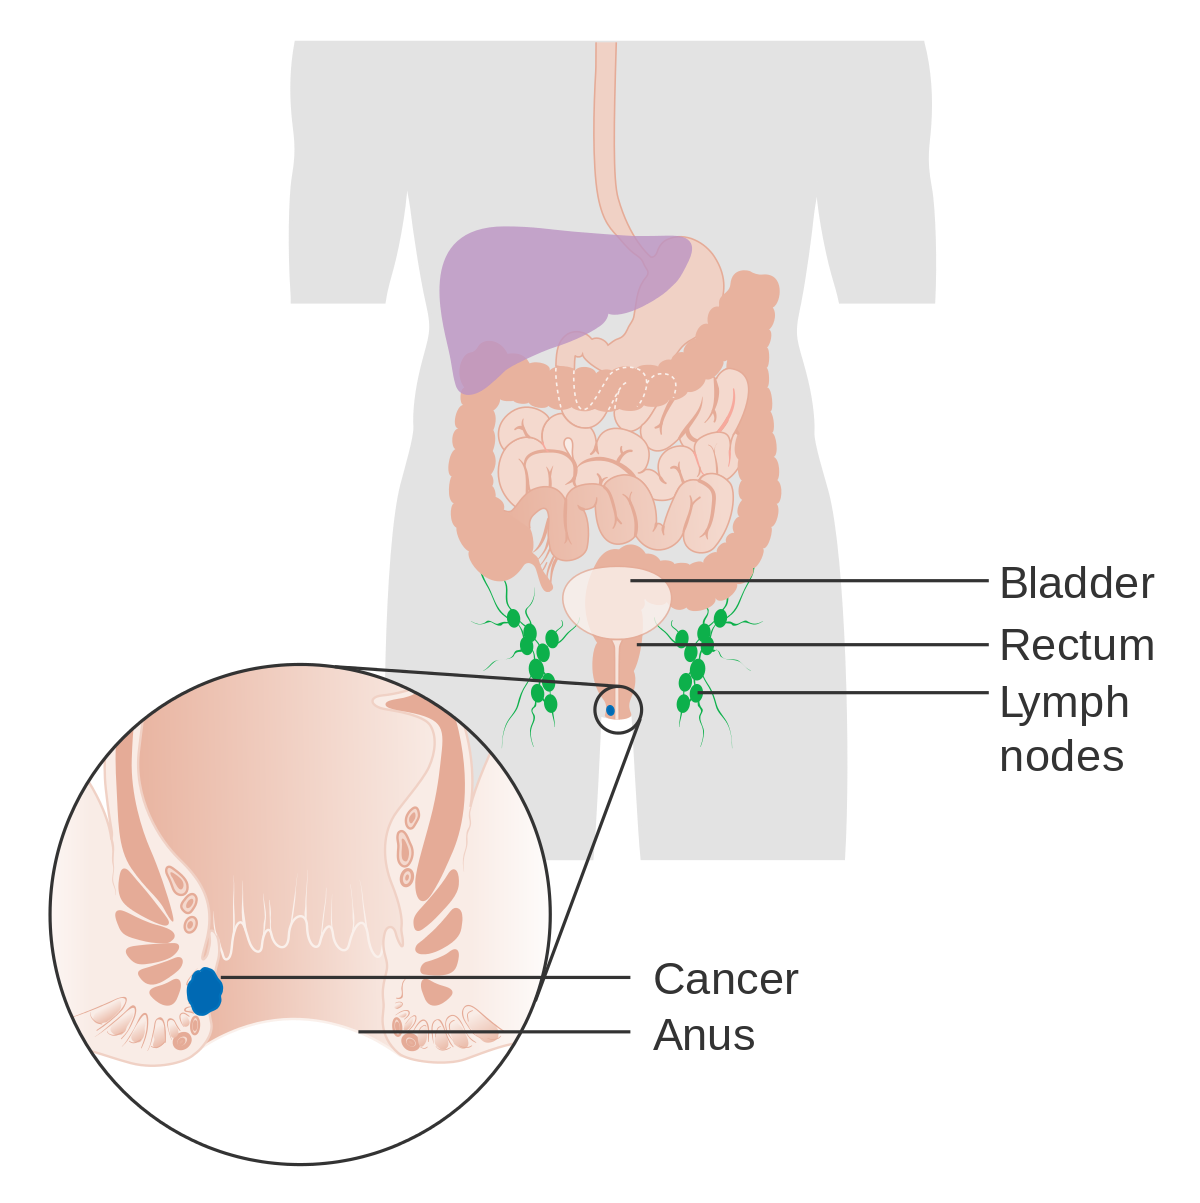 metastatic cancer buttock pain